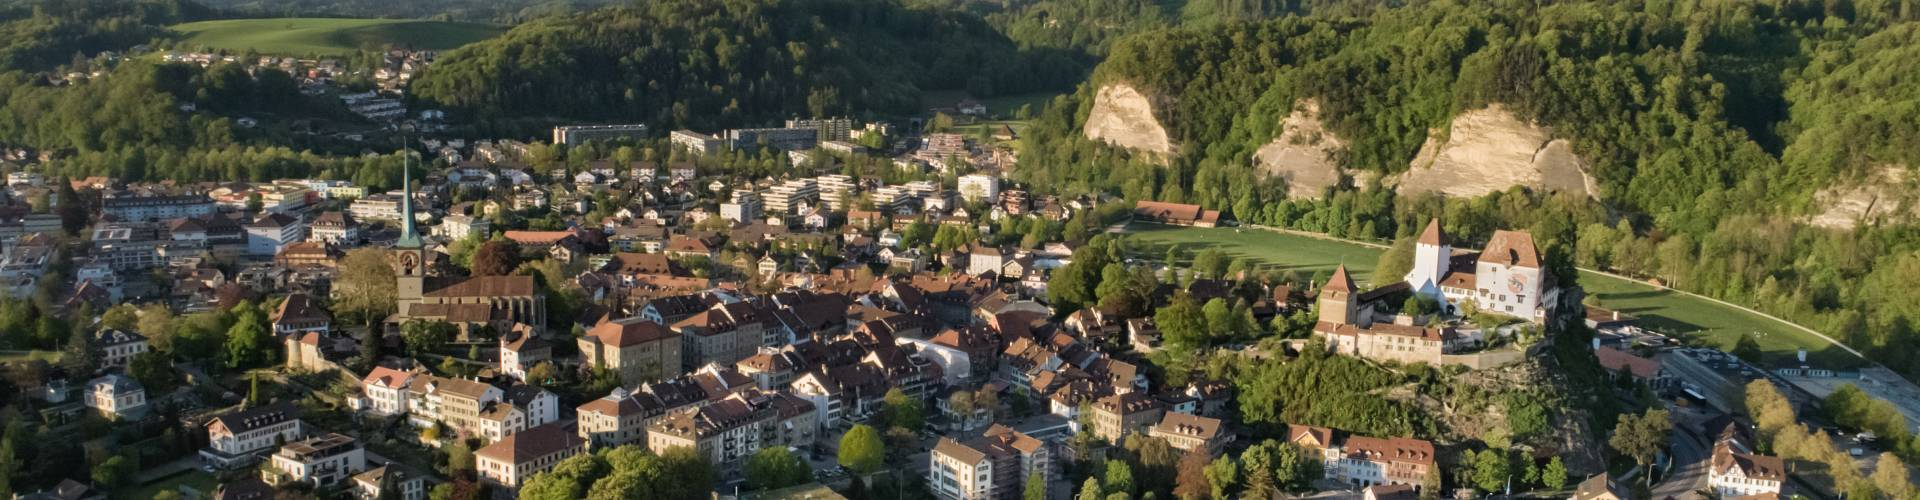 Immobilien - RE/MAX Immobilien Burgdorf